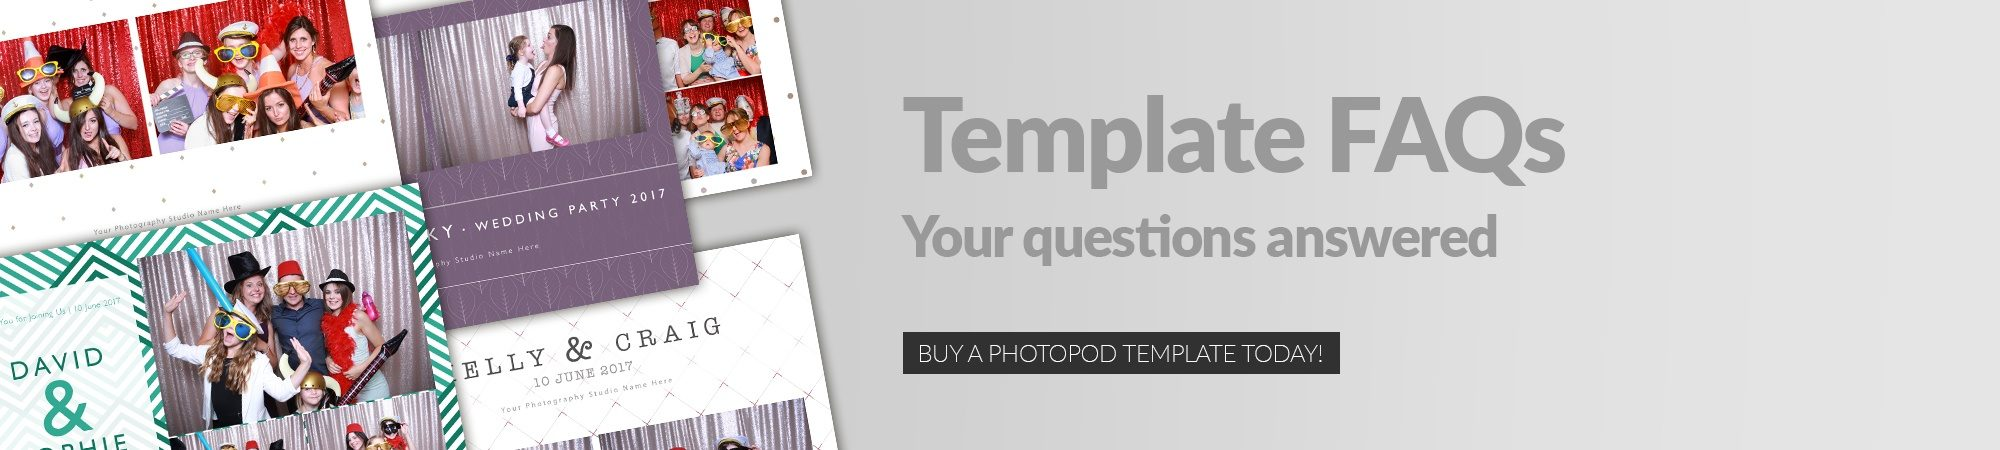 photo booth template banner image click to buy templates today